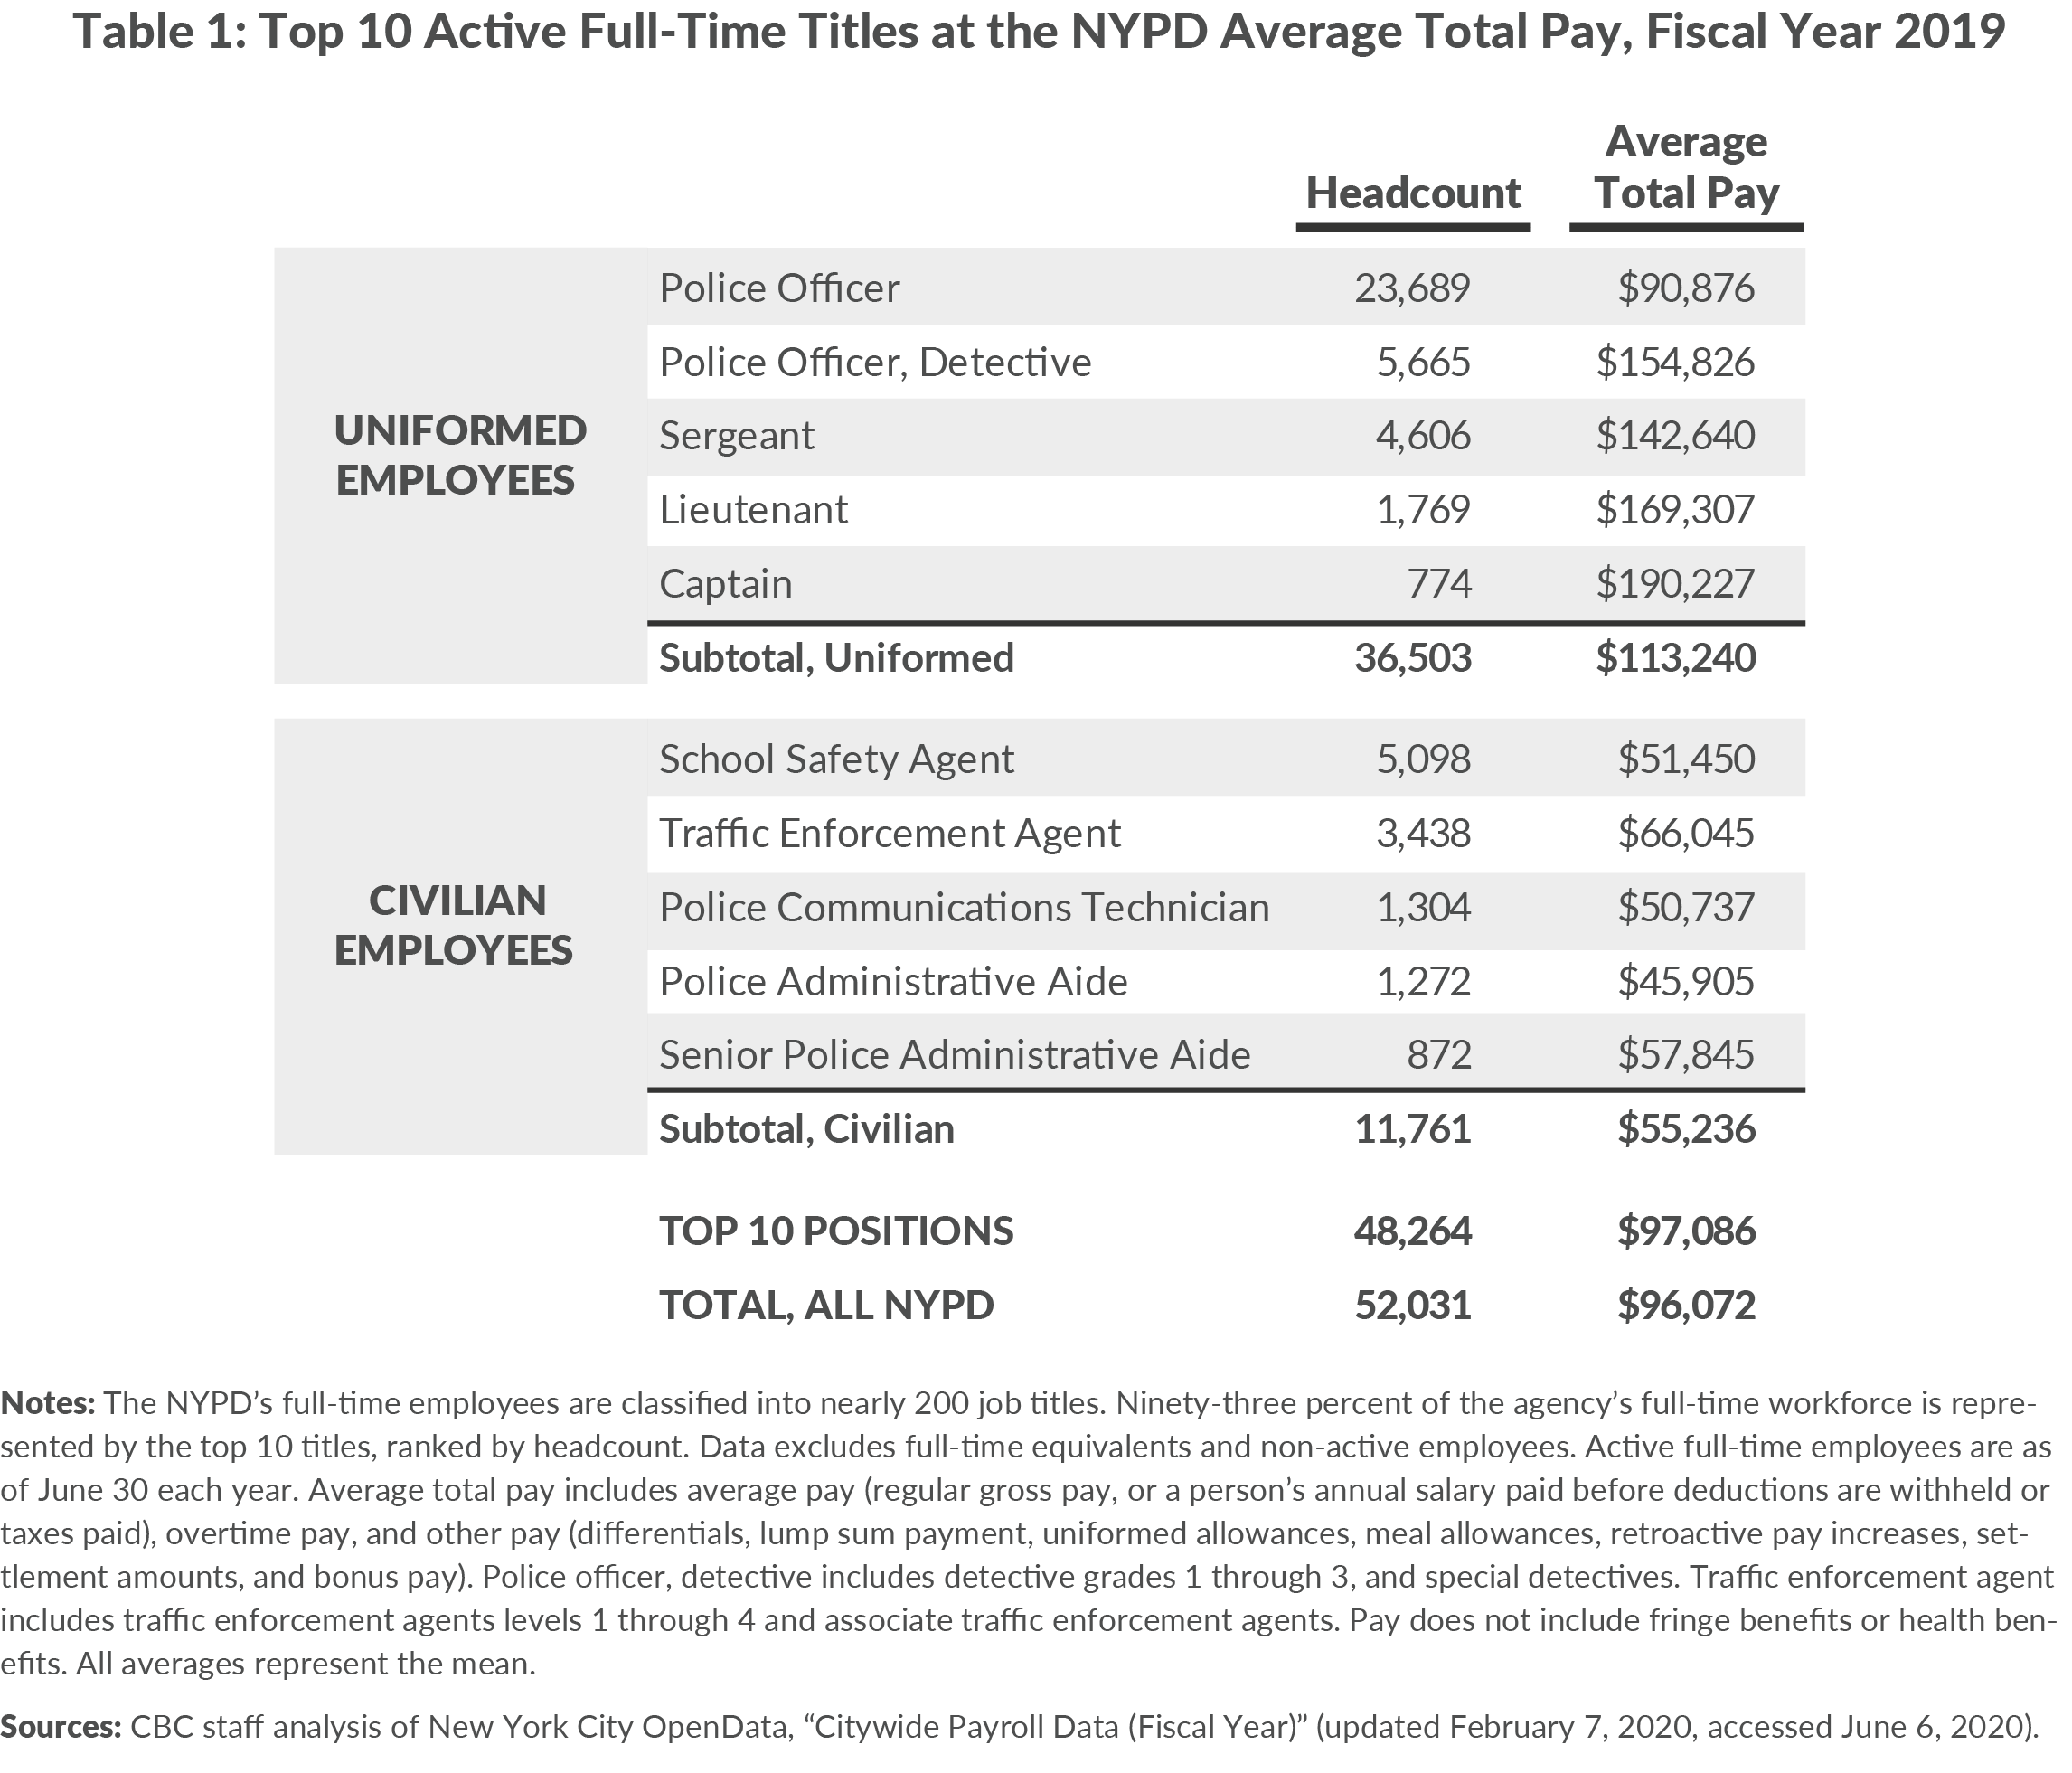 Table 1. Top 10 Active Full-Time Titles at the NYPD Average Total Pay, Fiscal Year 2019